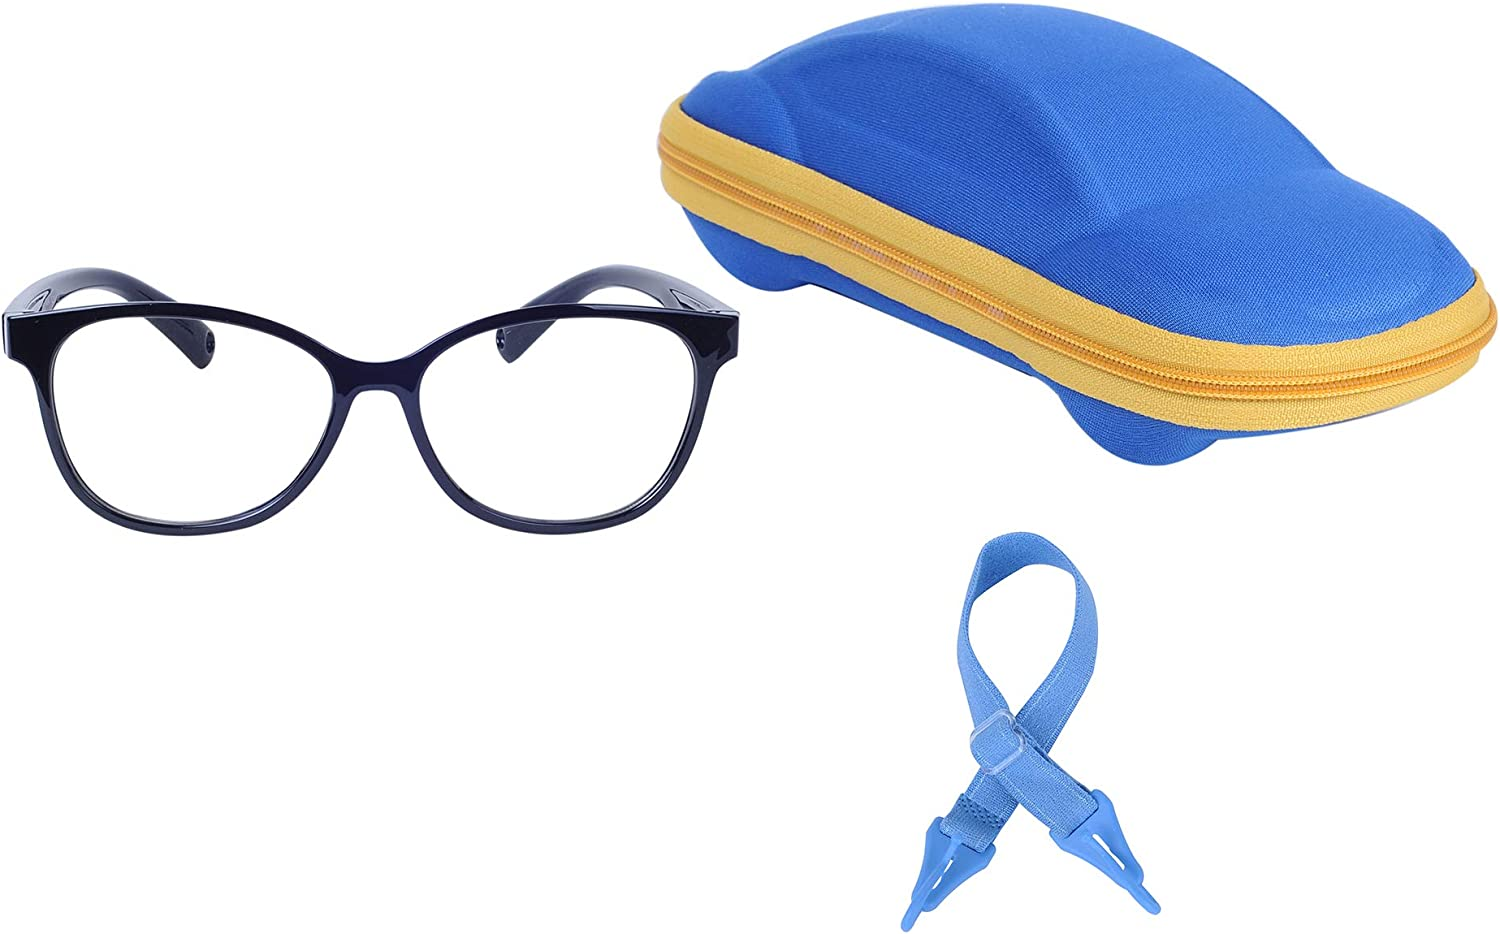 Kids Blue Light Blocking Latest item Glasses 4 years warranty with Boys Adjustable Girls for